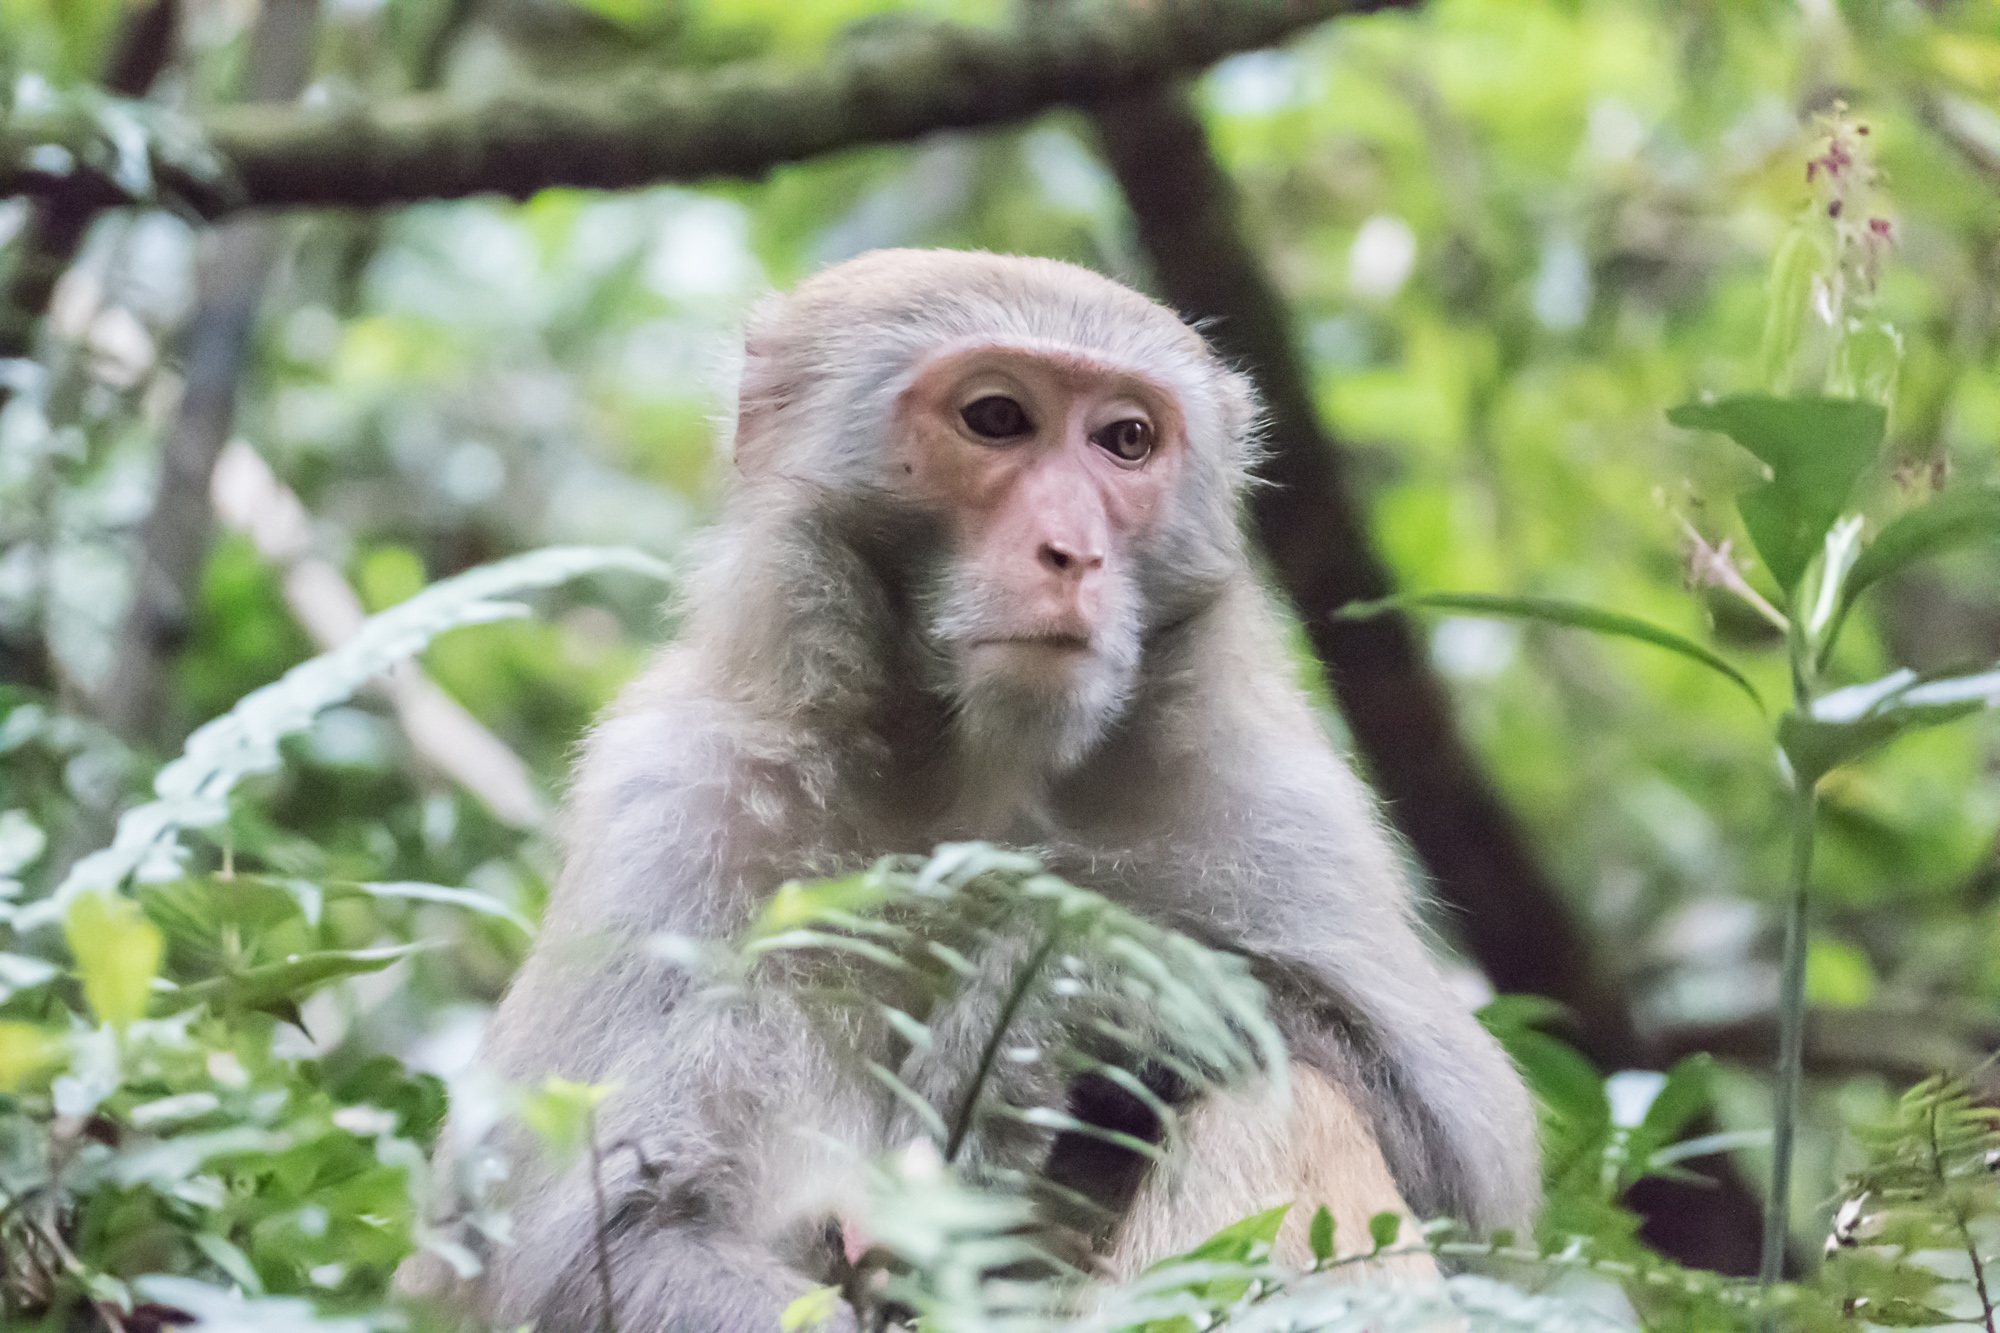 Many monkeys are seen on the forest floor